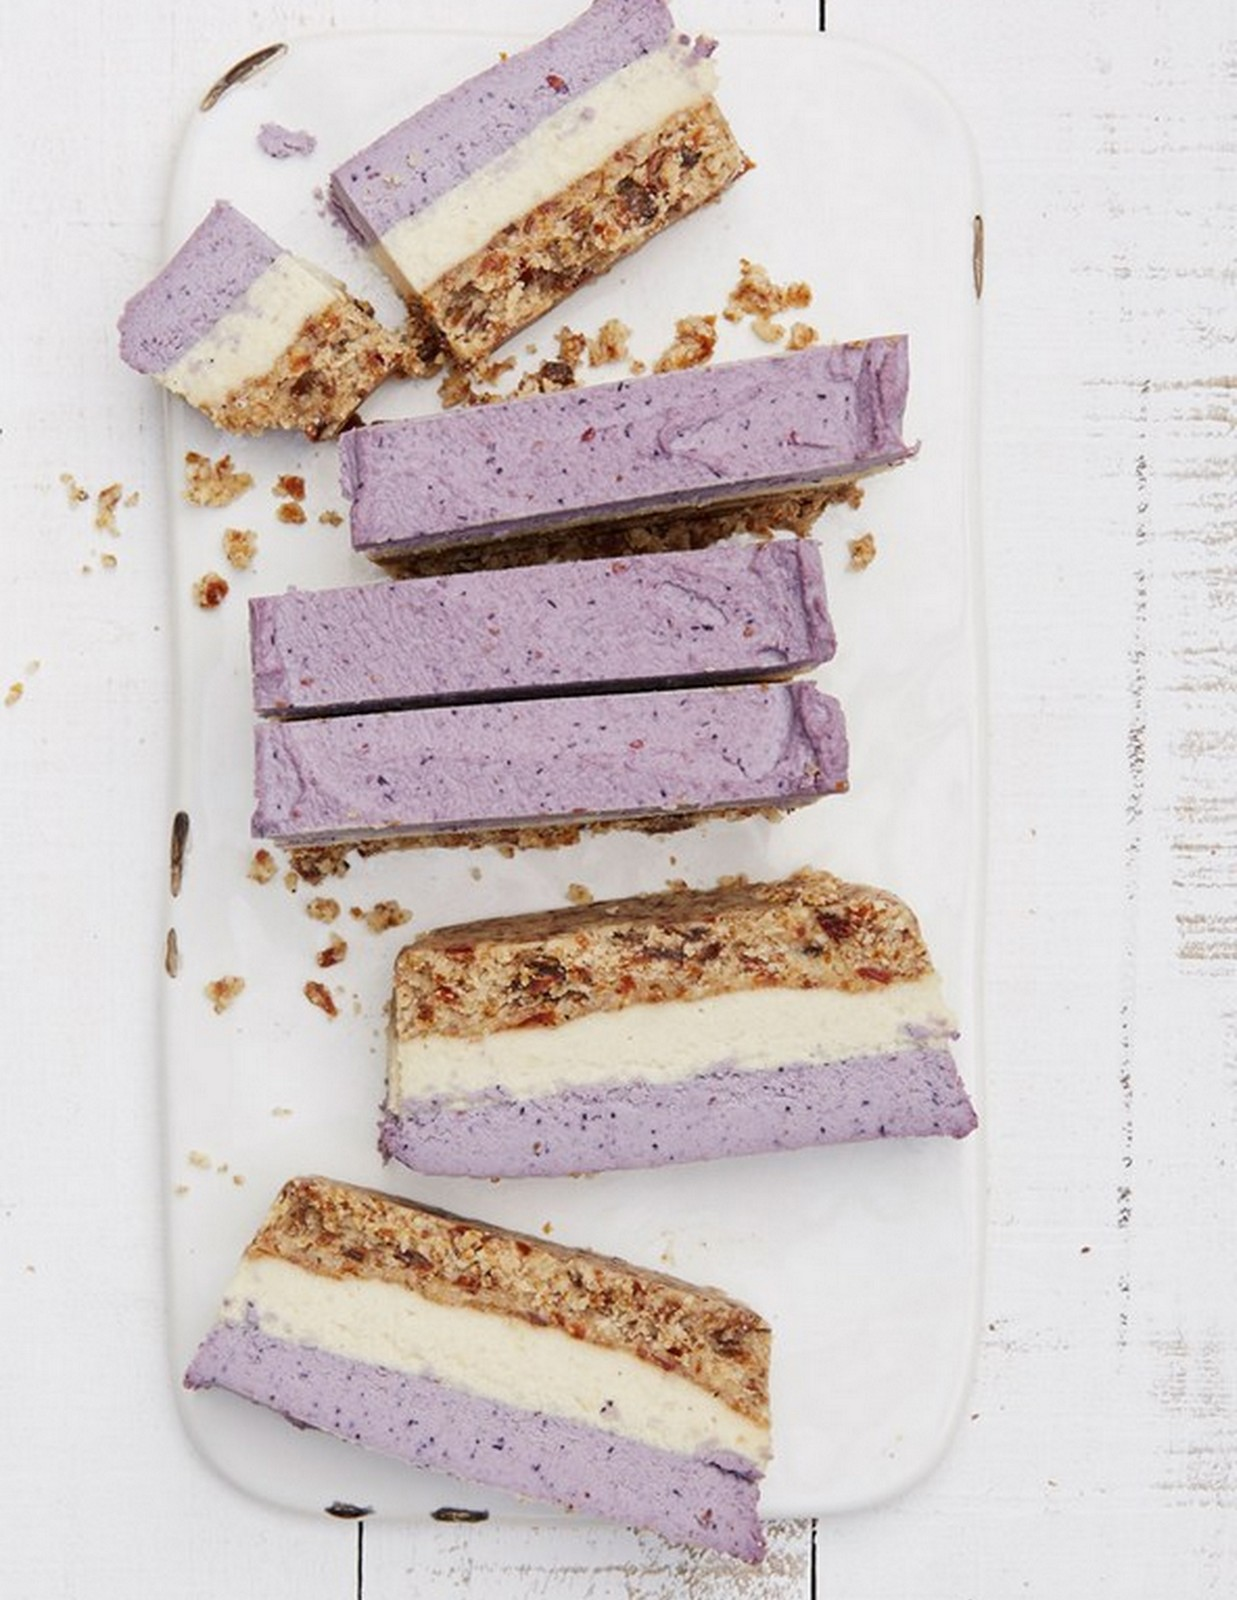 RAW BLUEBERRY AND CASHEW COCONUT BARS